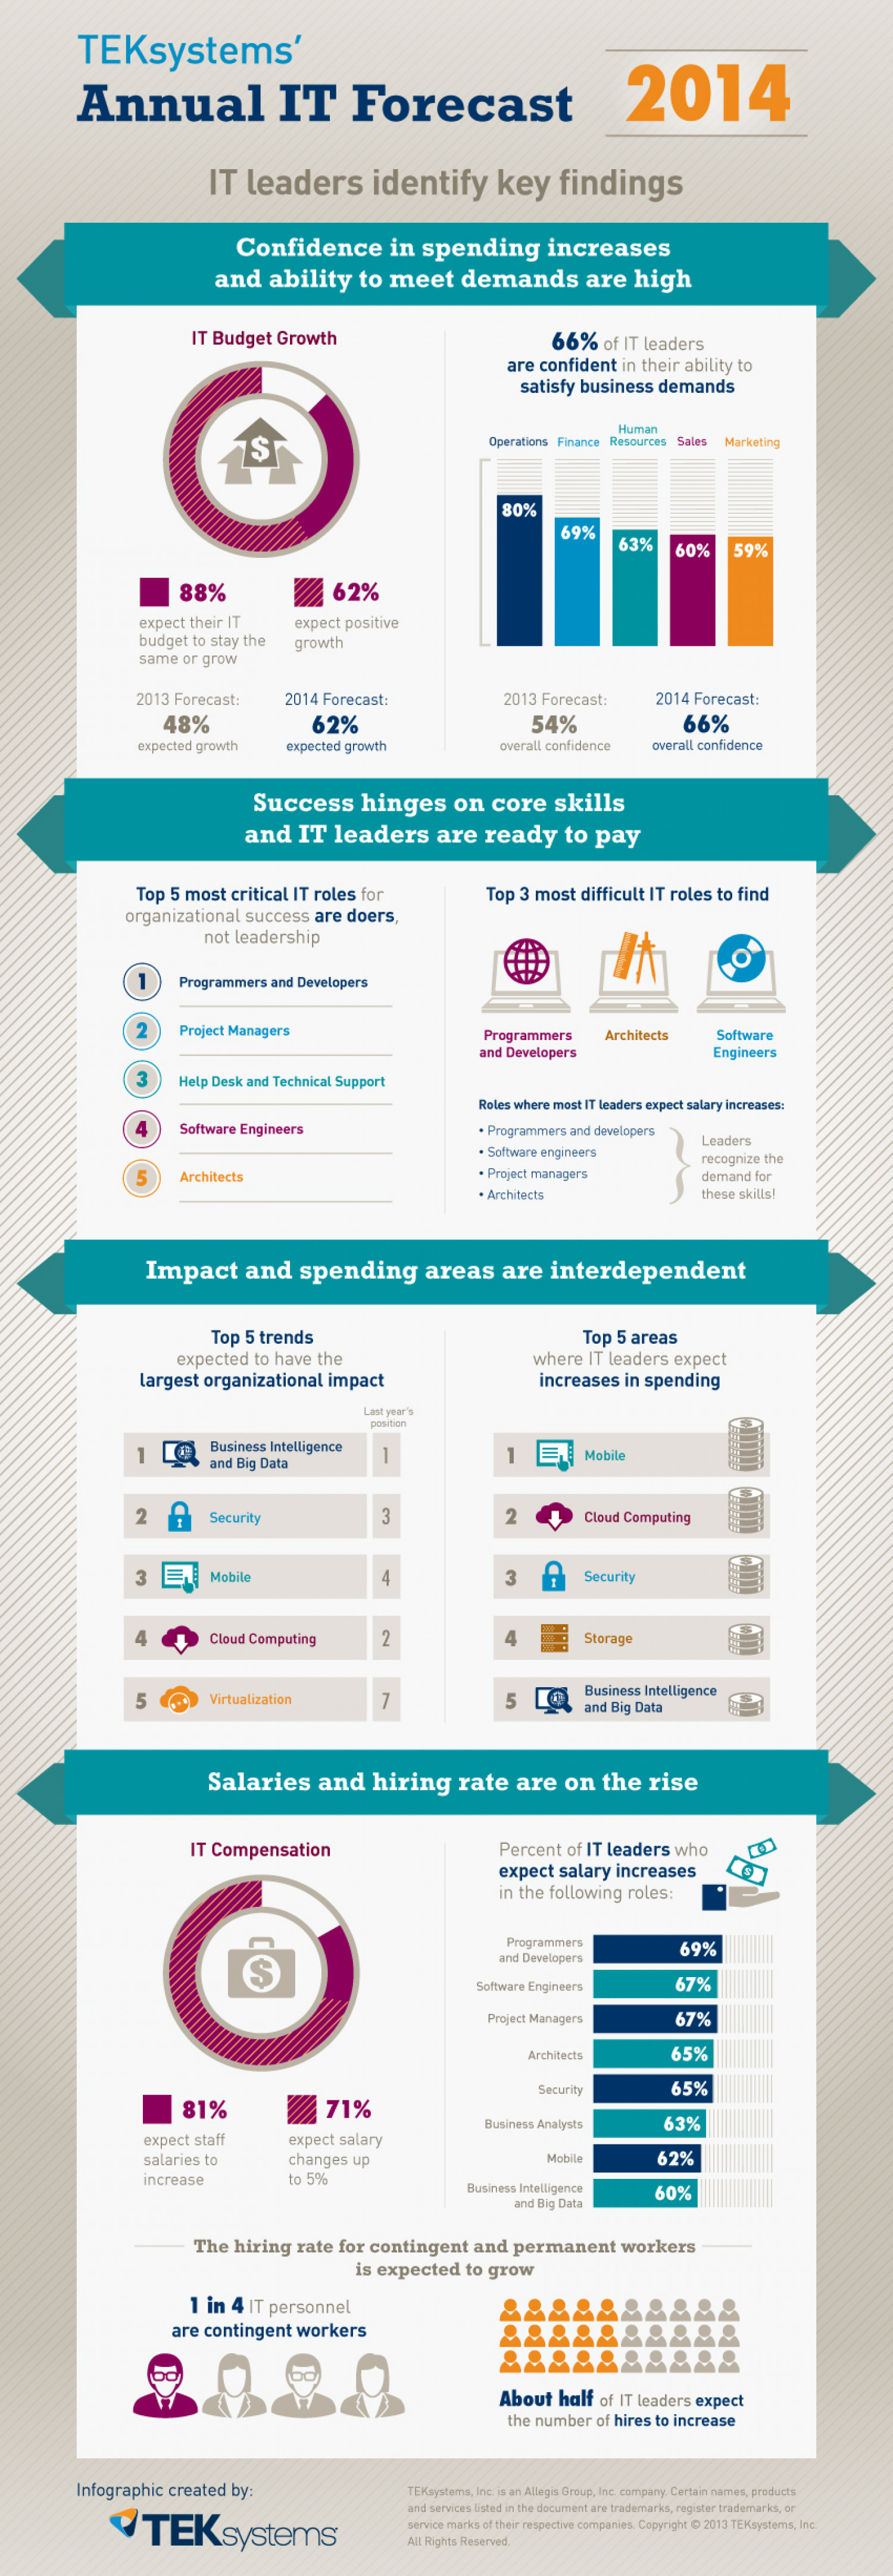 TEKsystems Annual IT Forecast Infographic